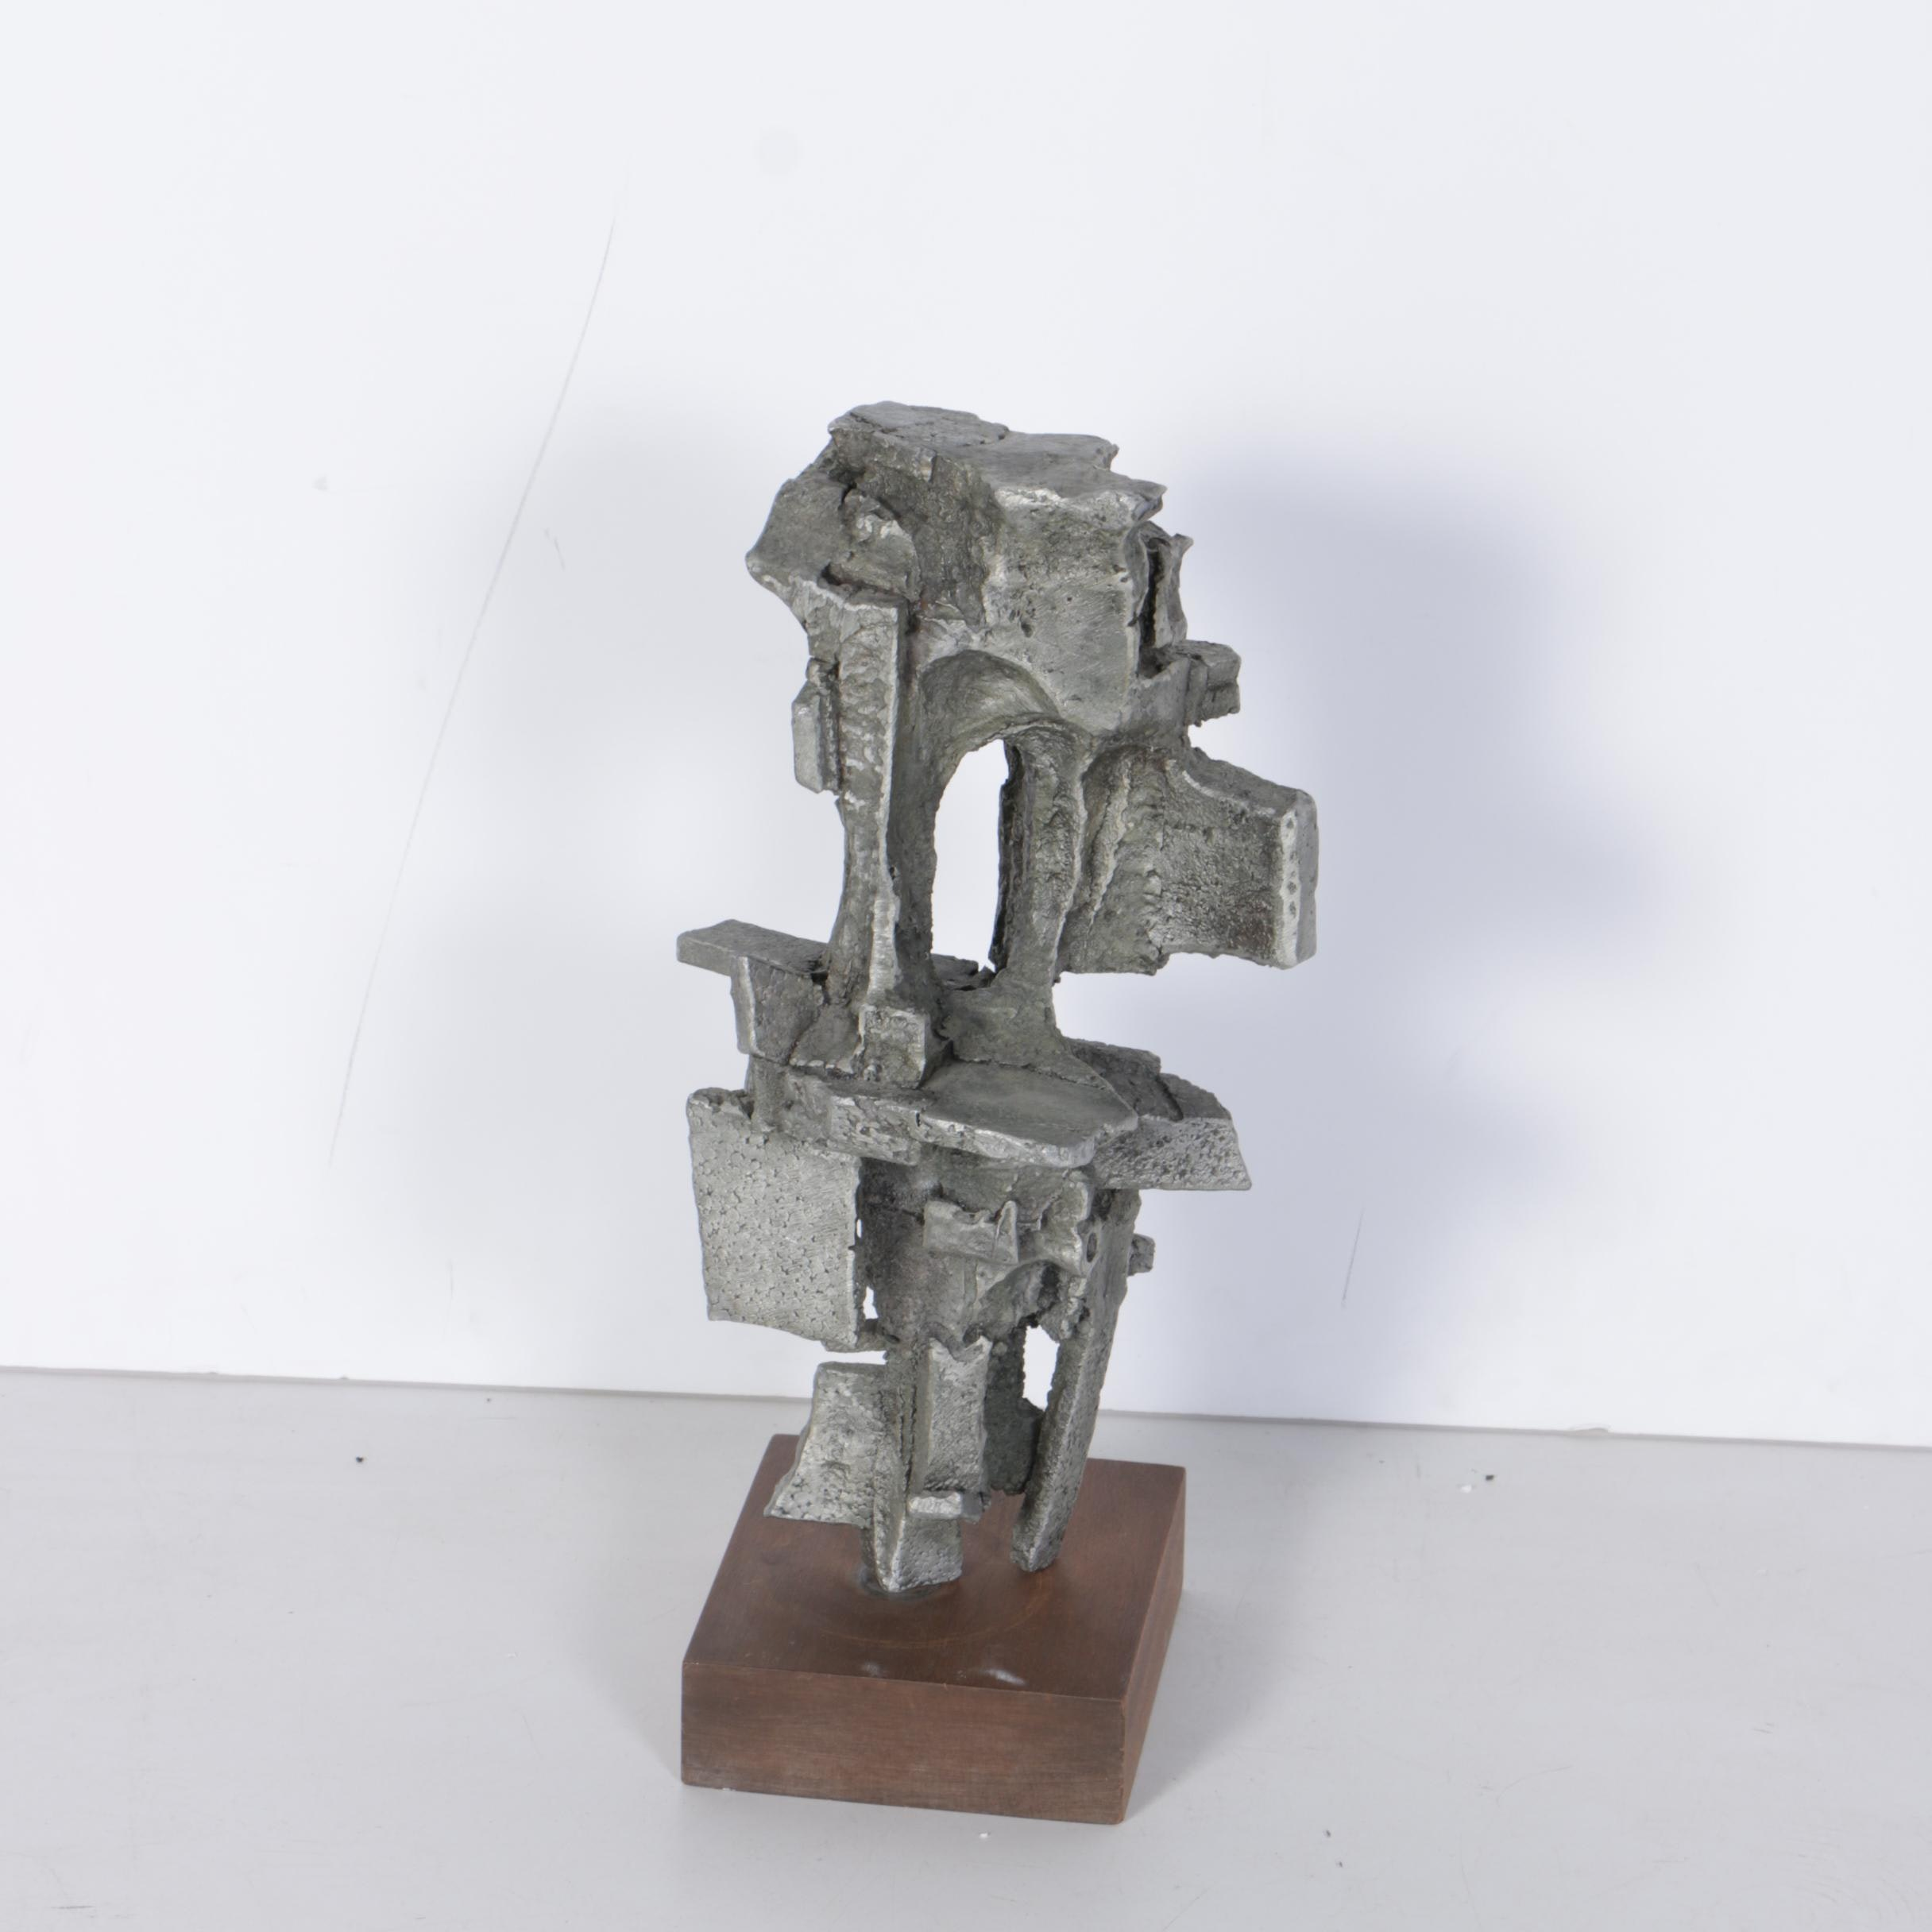 Circa 1970s Abstract Aluminum Sculpture Attributed to Gene Thompson